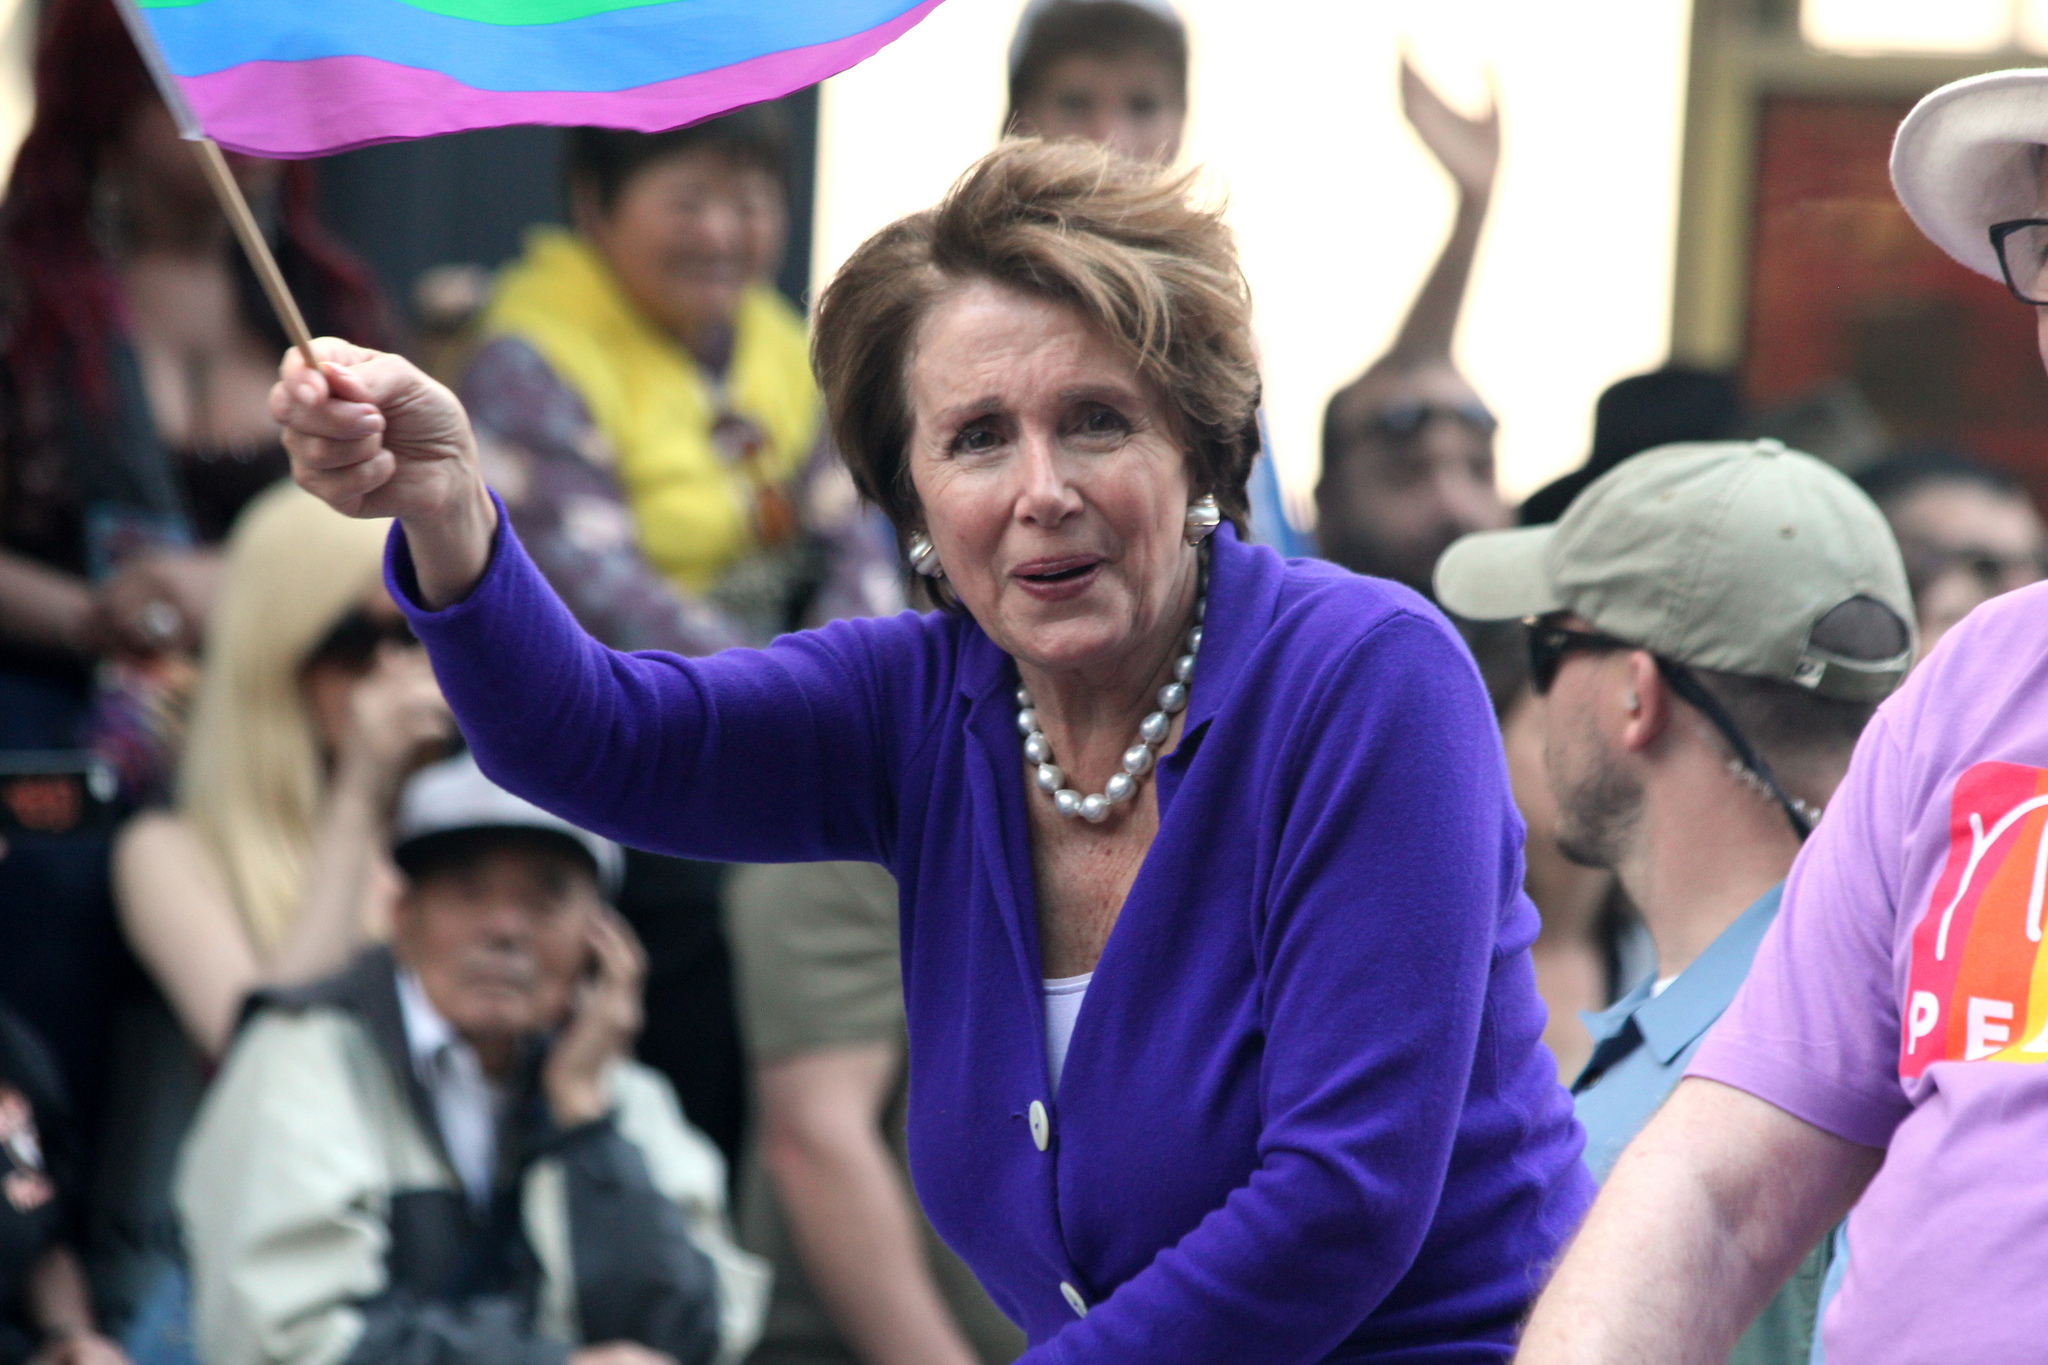 Pelosi Supports Transgender Military Service